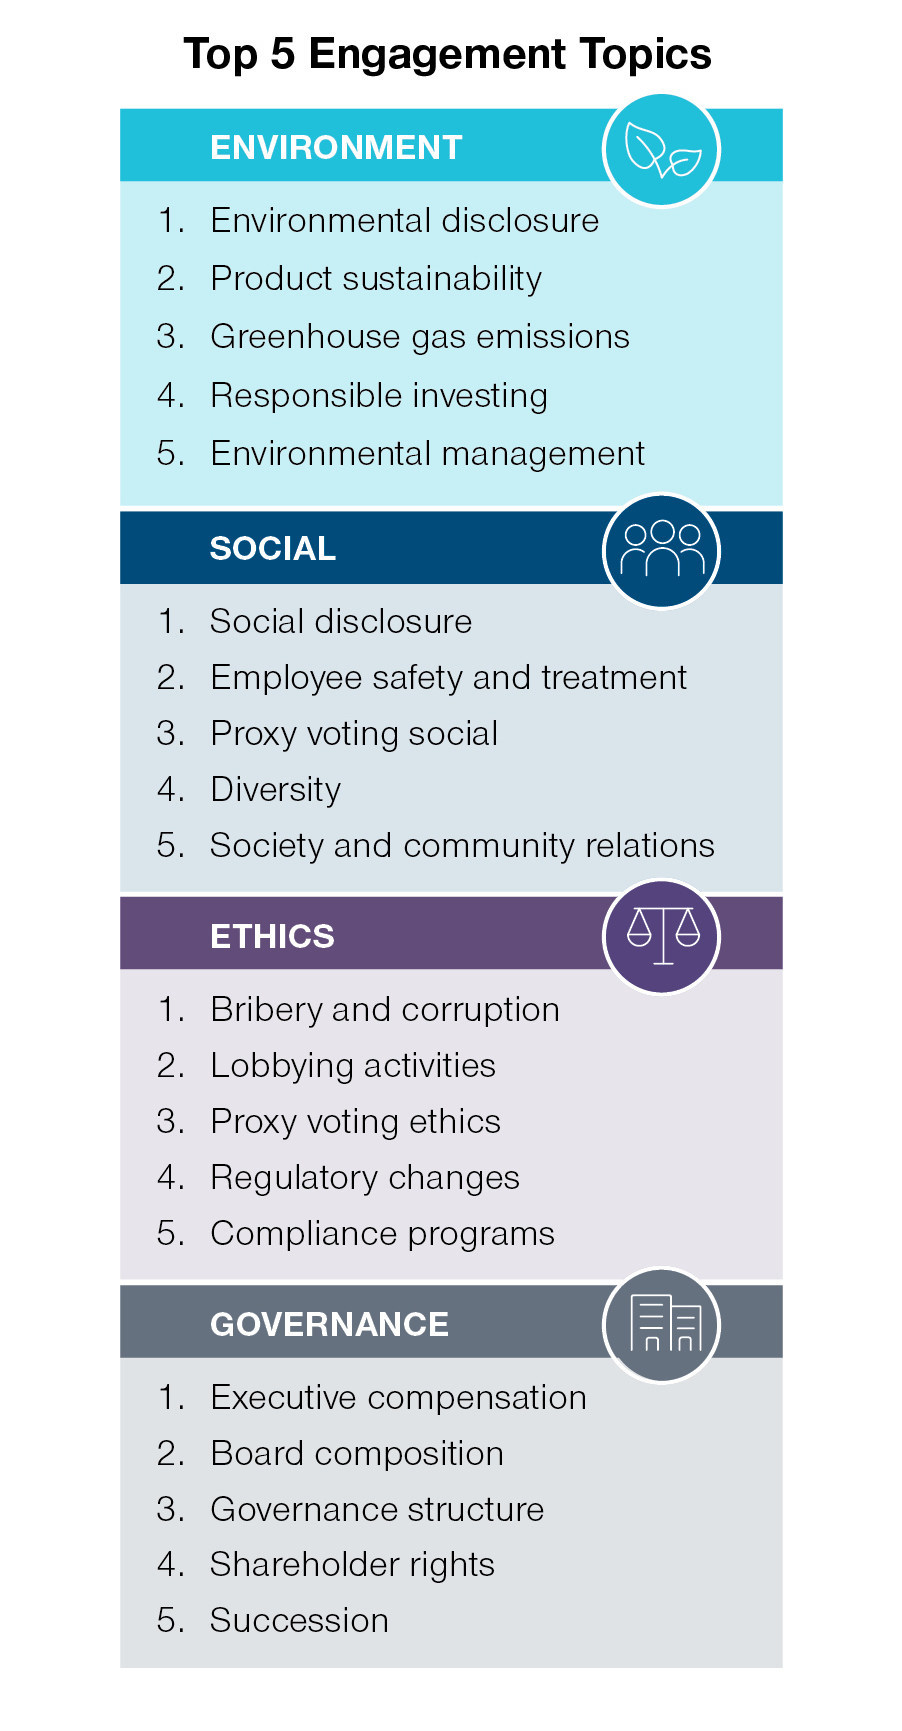 T. Rowe Price's top five engagement topics with portfolio companies in 2019